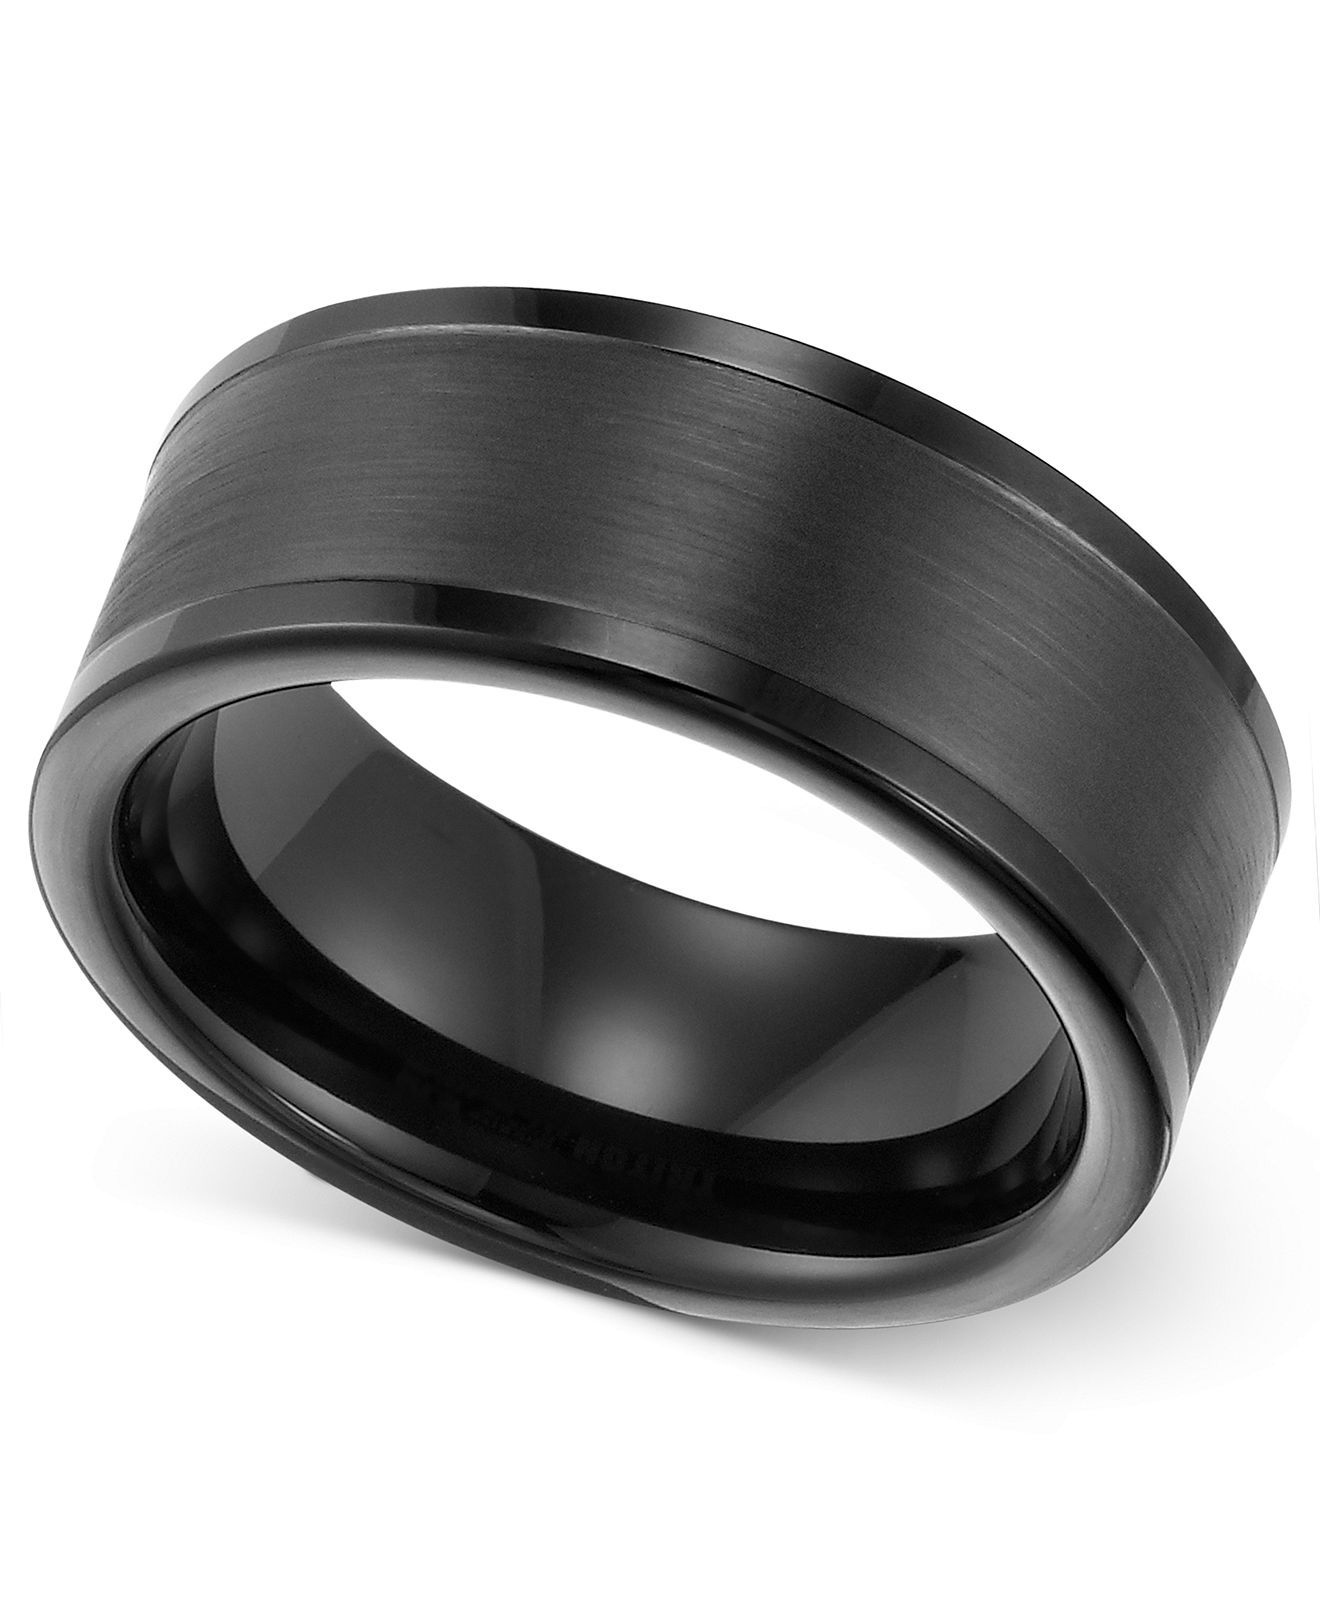 Triton Men S 8mm Black Tungsten Wedding Band Reviews Rings Jewelry Watches Macy S Mens Wedding Rings Black Tungsten Wedding Band Tungsten Wedding Bands